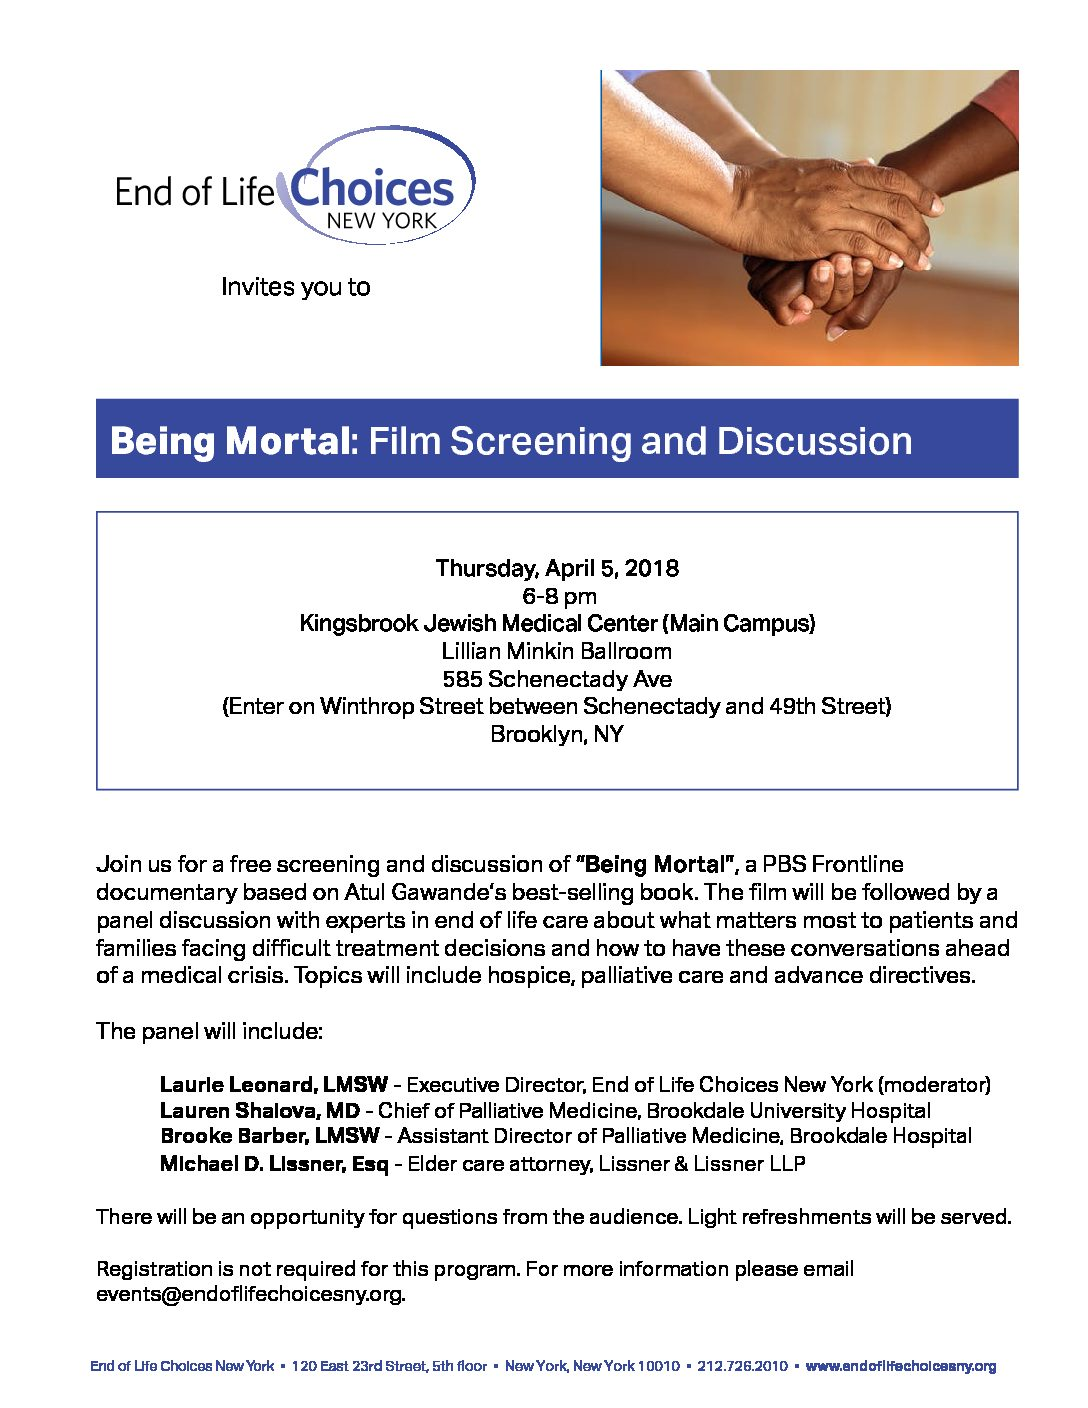 Being Mortal Screening and Discussion – End of Life Choices